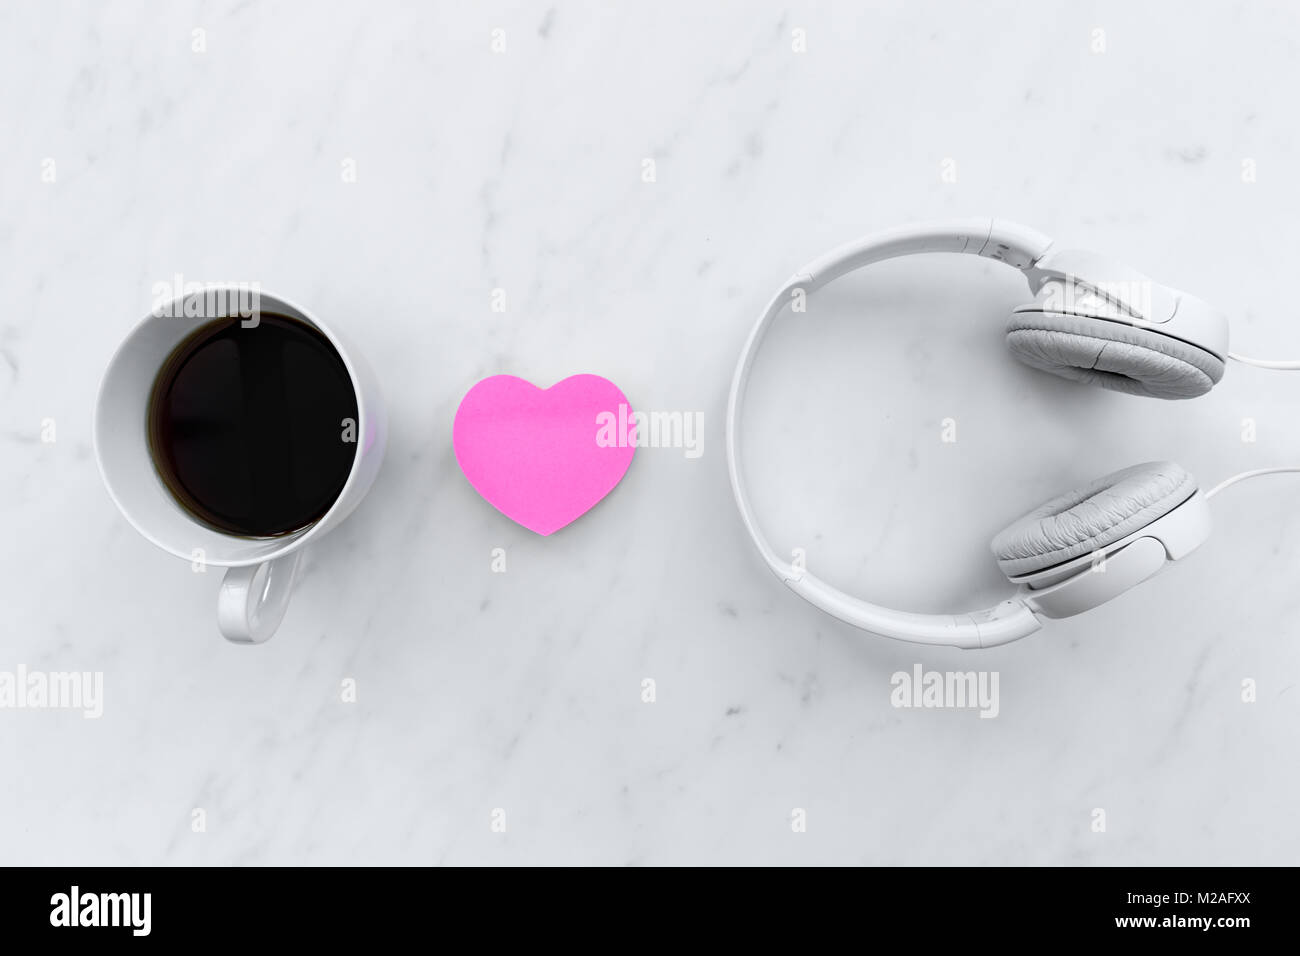 Love Music Concept With Pink Love Heart Shape And White Headphones On Stock Photo Alamy